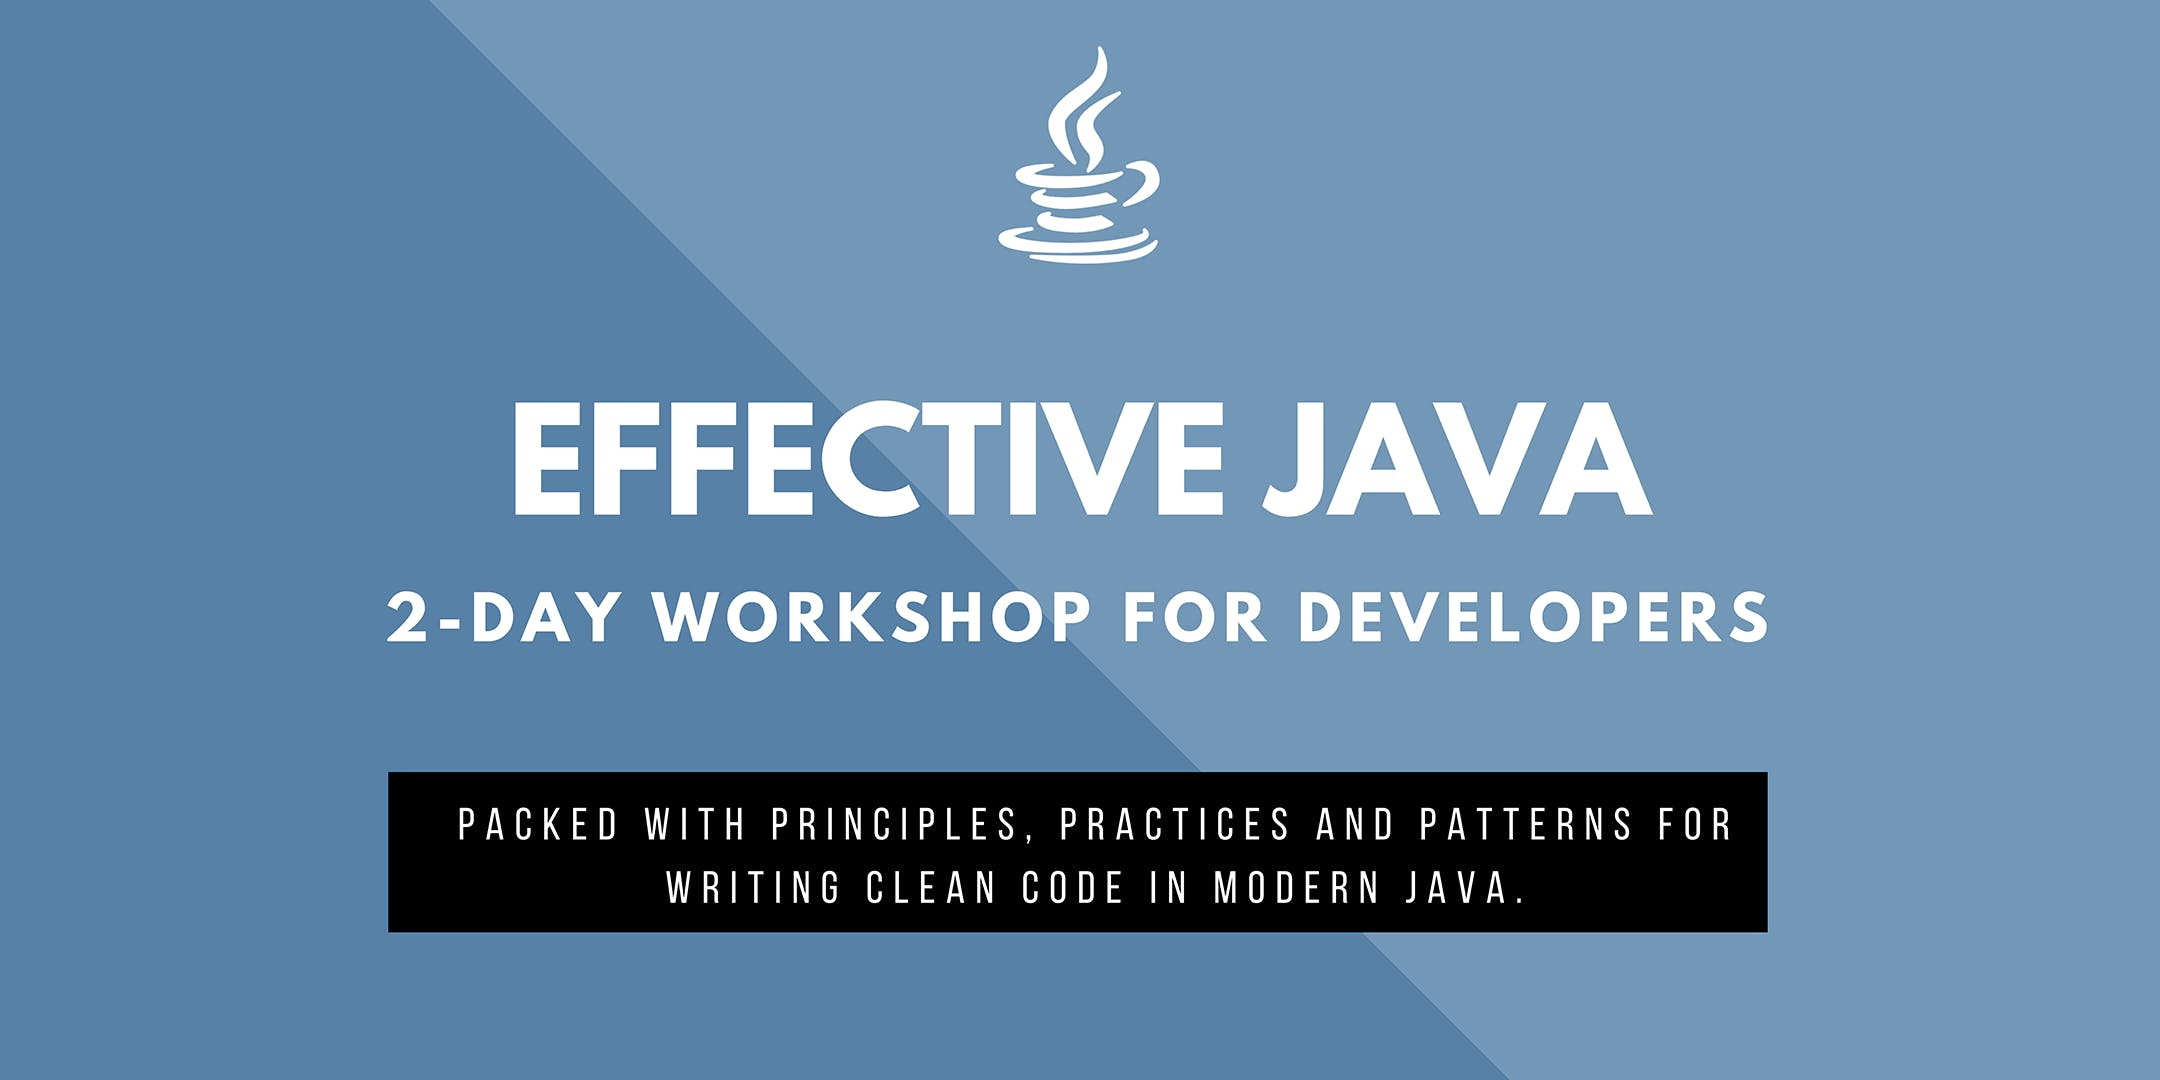 TOP Effective Java 10 for Developers (Krakw)